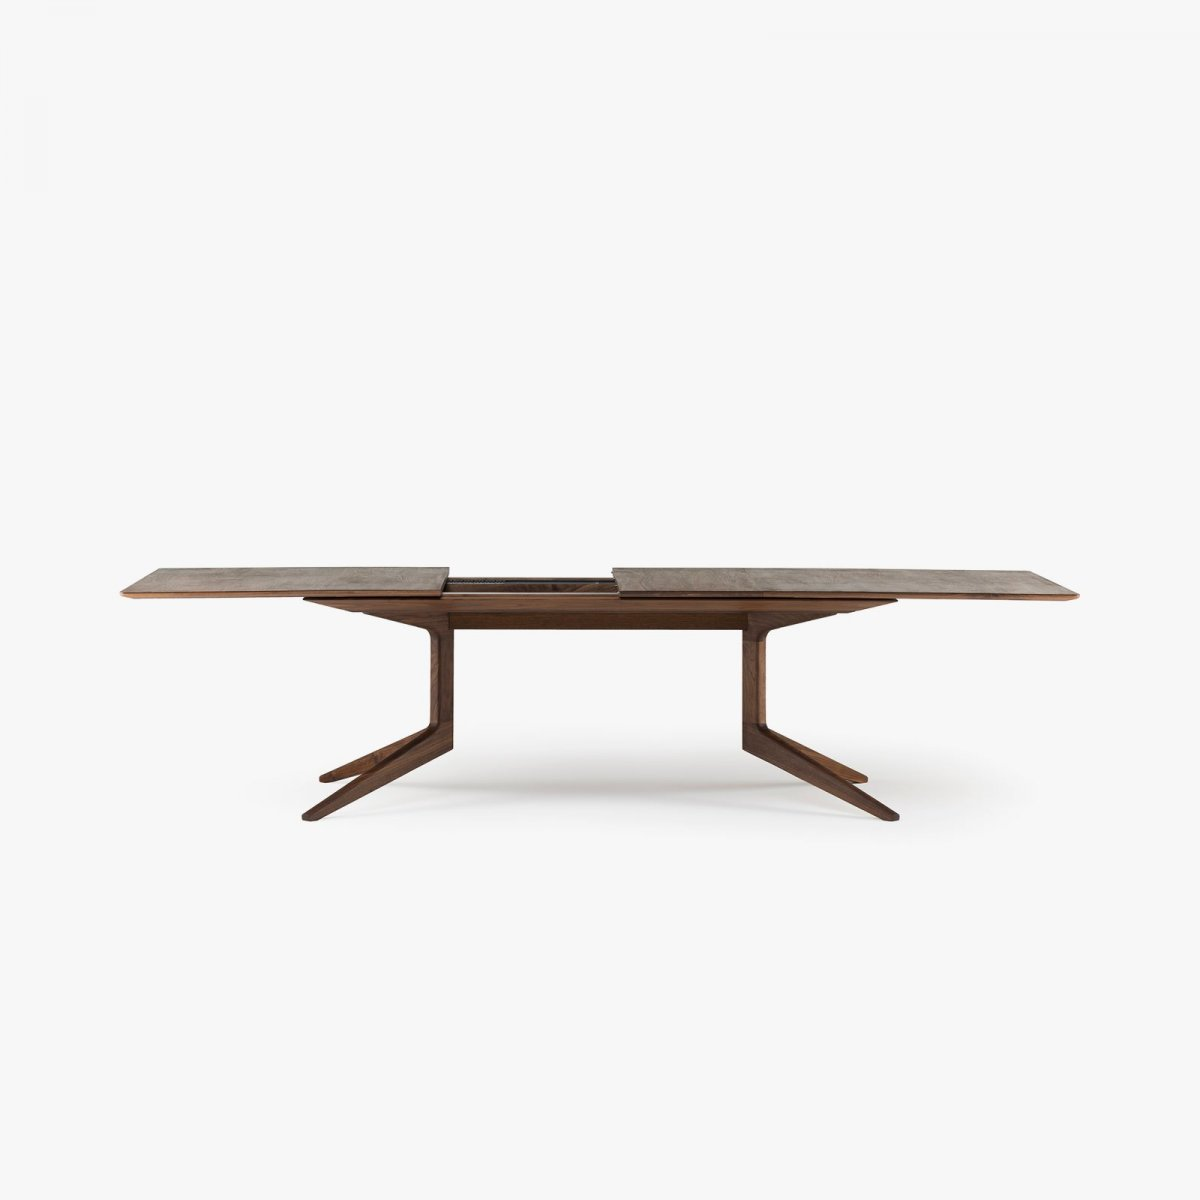 341E Light Extending Table in Danish oiled walnut, opened.